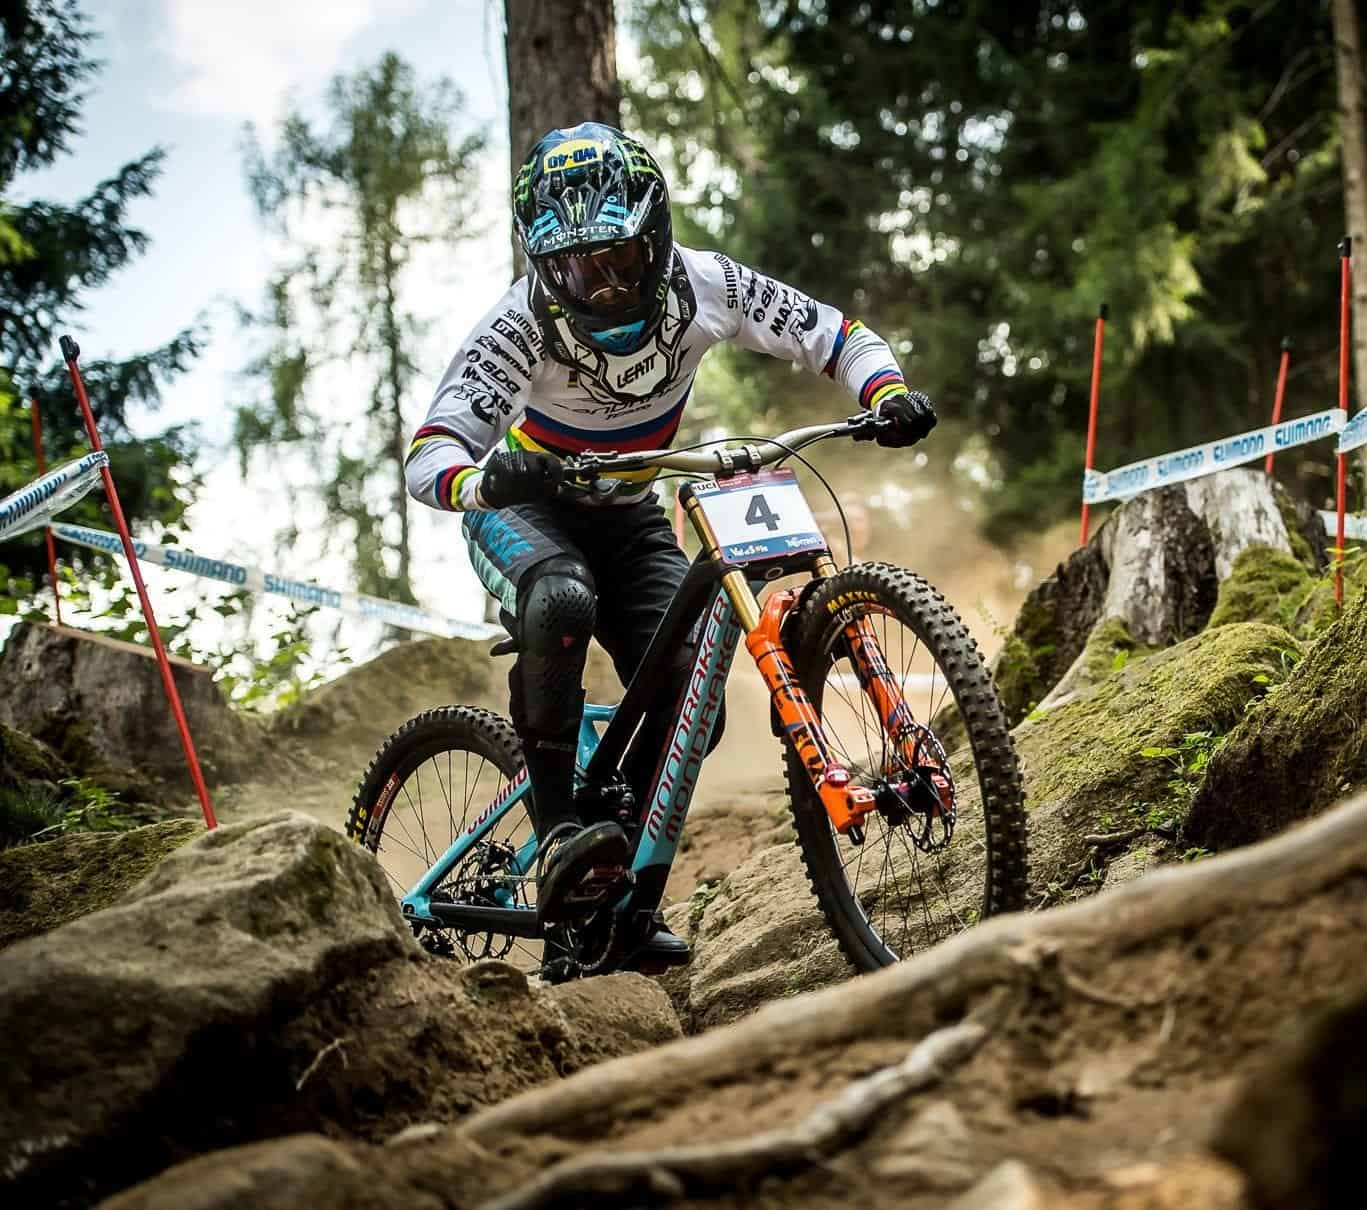 Danny Hart secures 6th overall in the 2017 World Cup Series